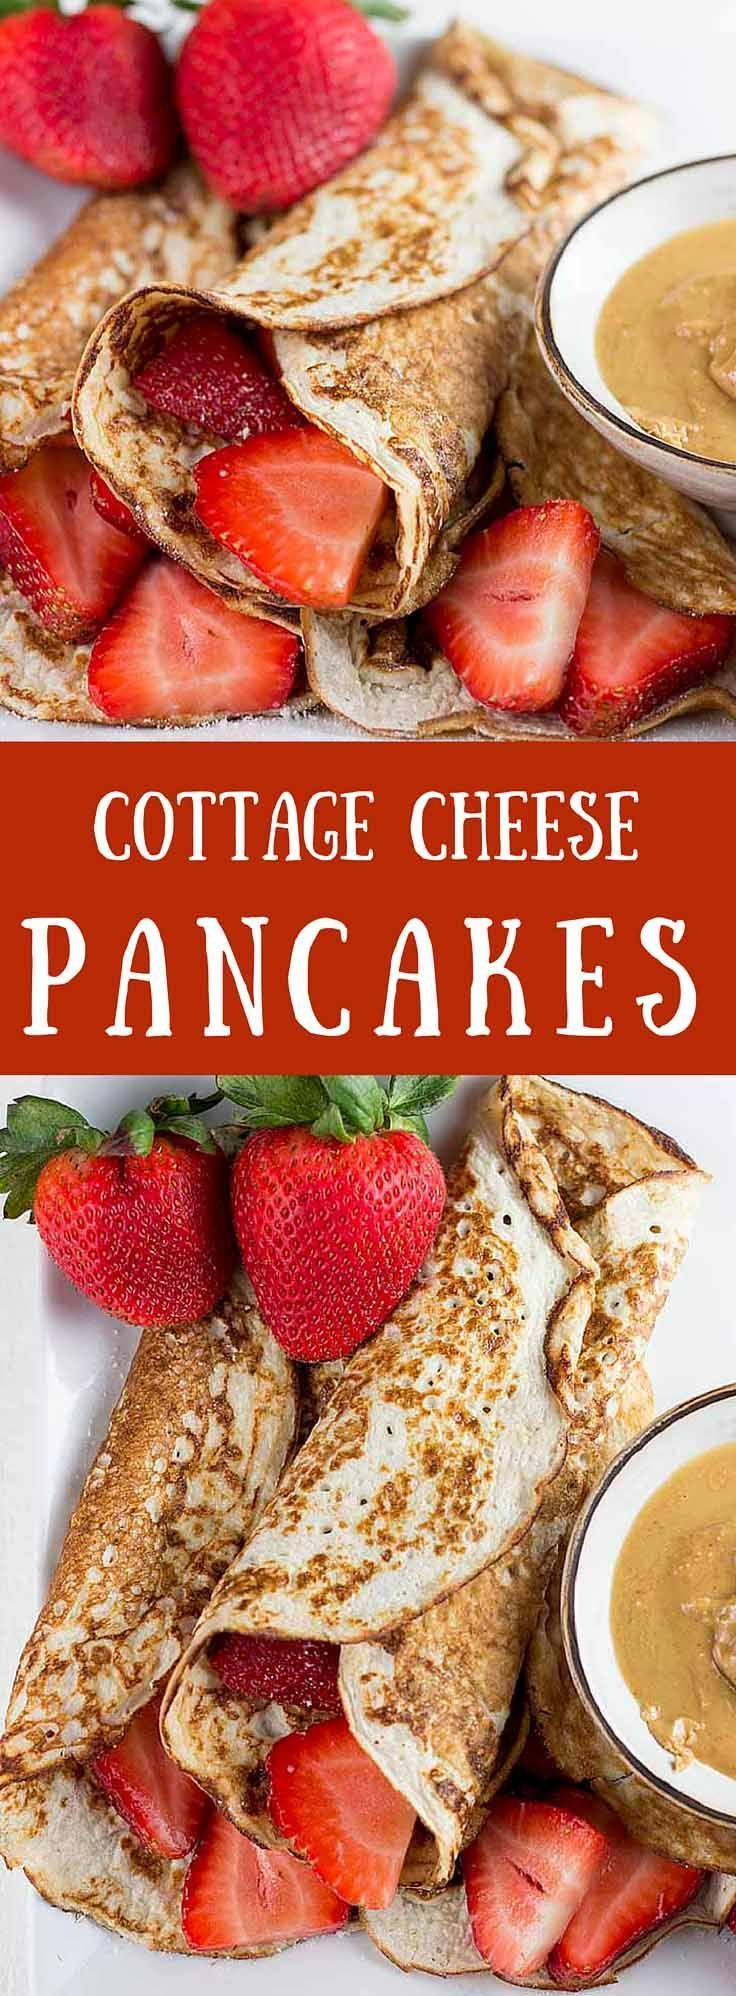 low carb cottage cheese pancakes recipe healthy cravings rh pinterest com